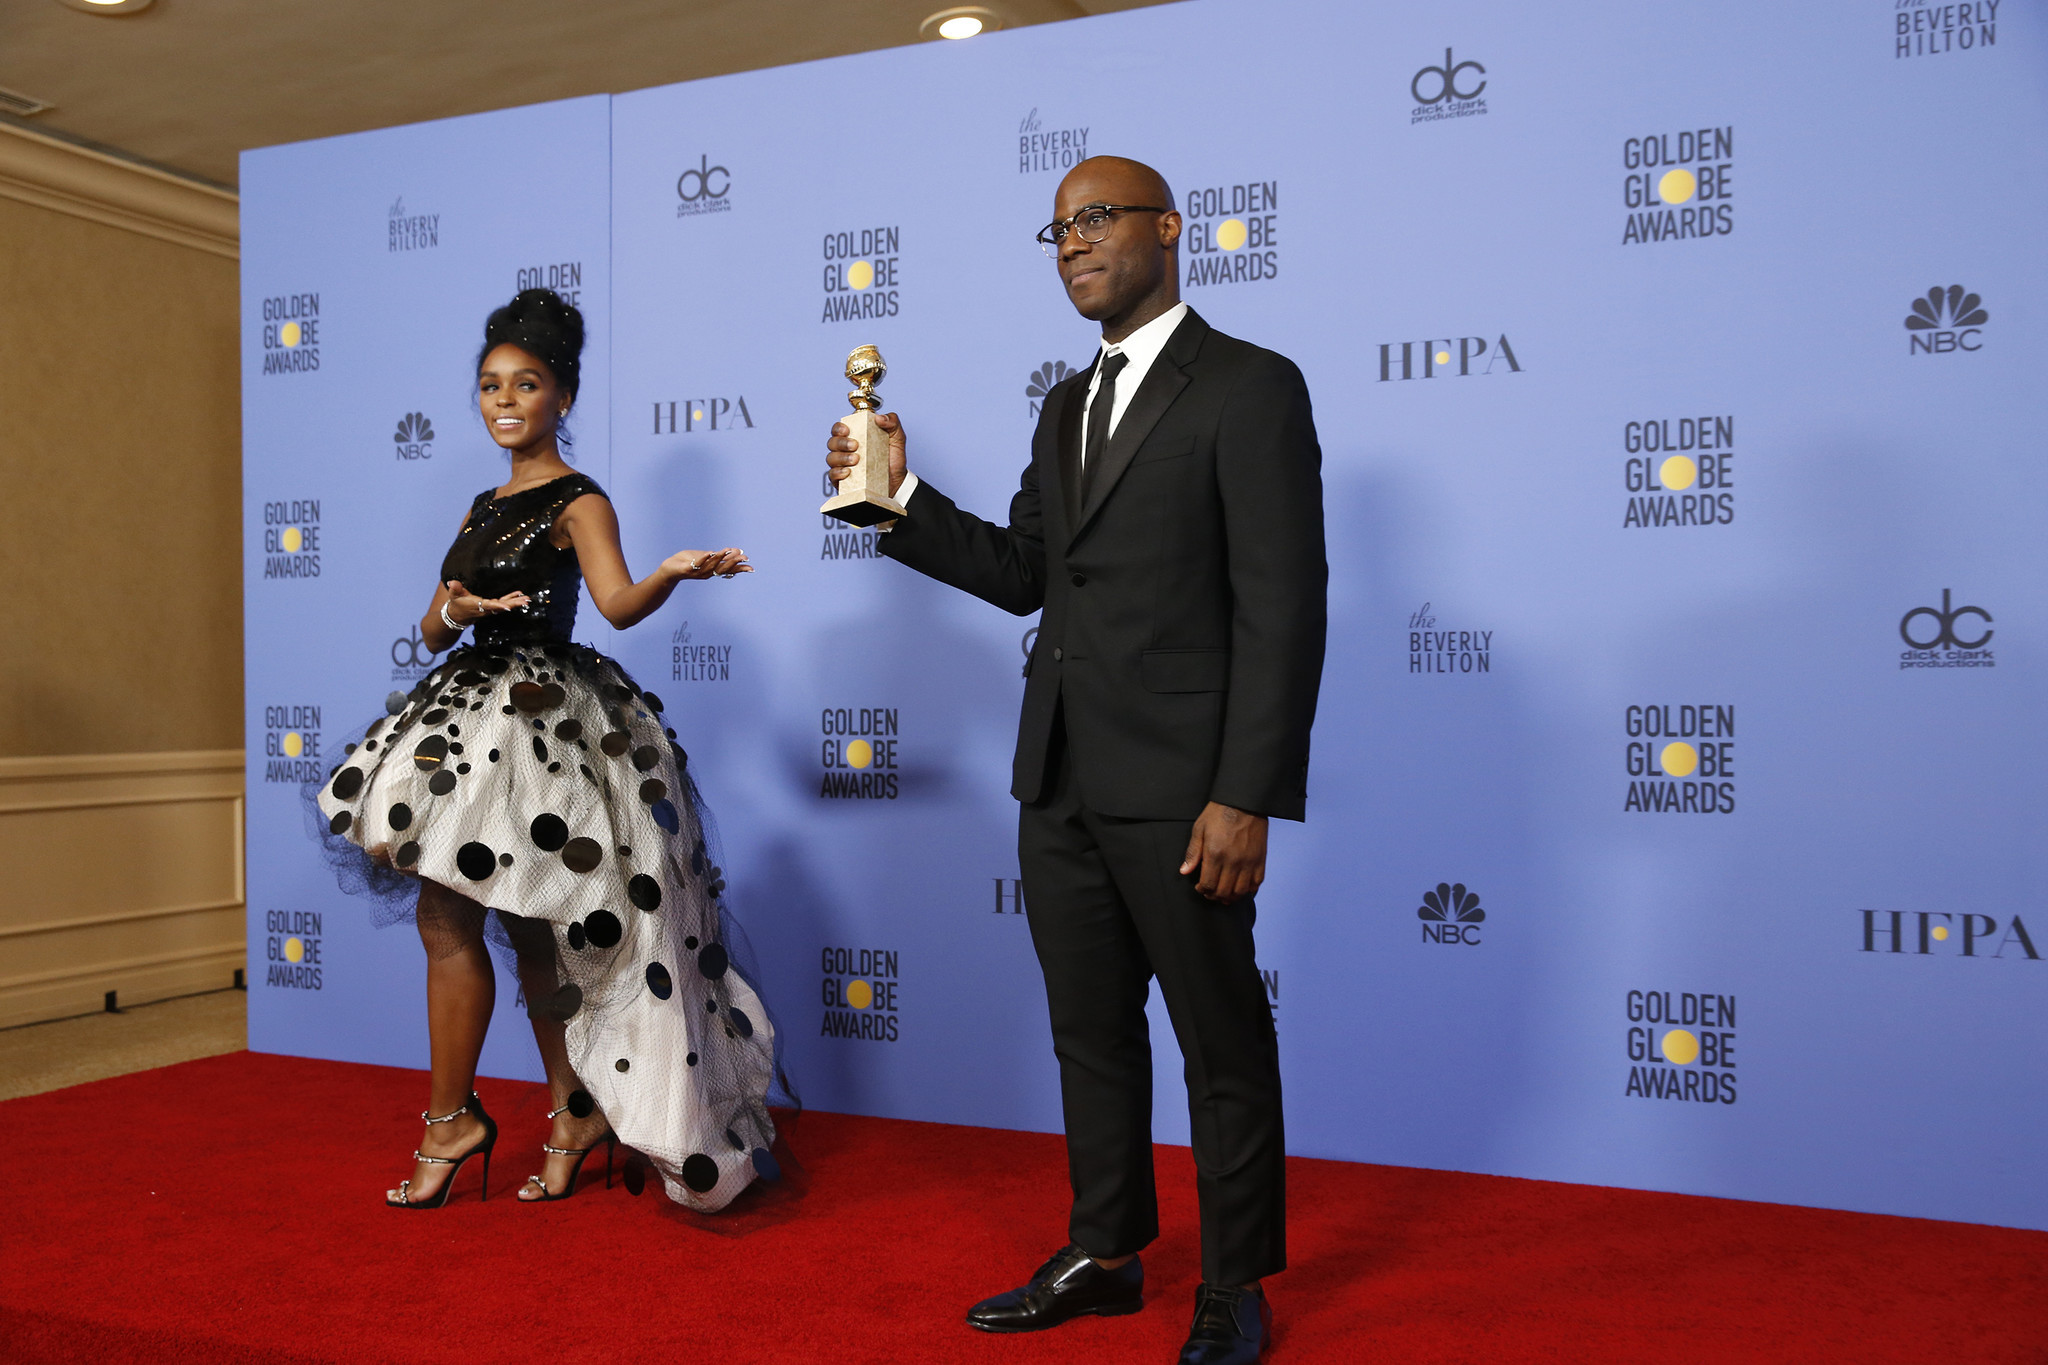 """Janelle Monae and writer-director Barry Jenkins of """"Moonlight"""" at the Golden Globes. (Allen J. Schaben / Los Angeles Times)"""